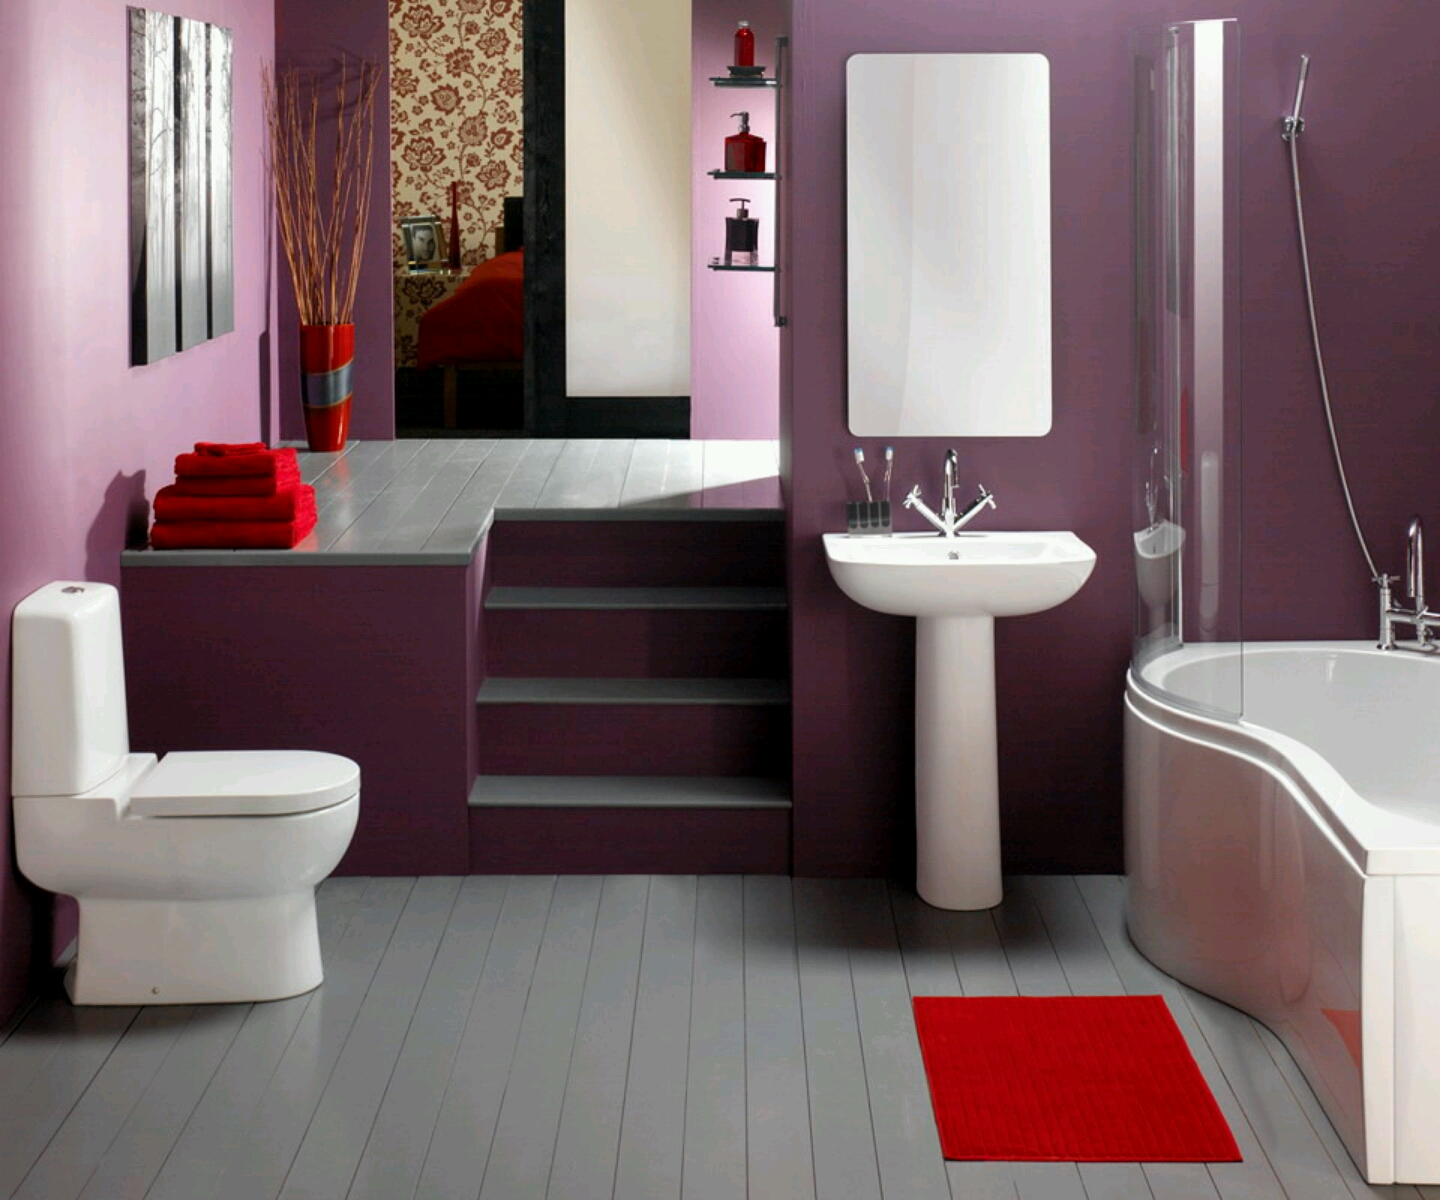 New home designs latest luxury modern bathrooms designs for Pictures of new bathrooms